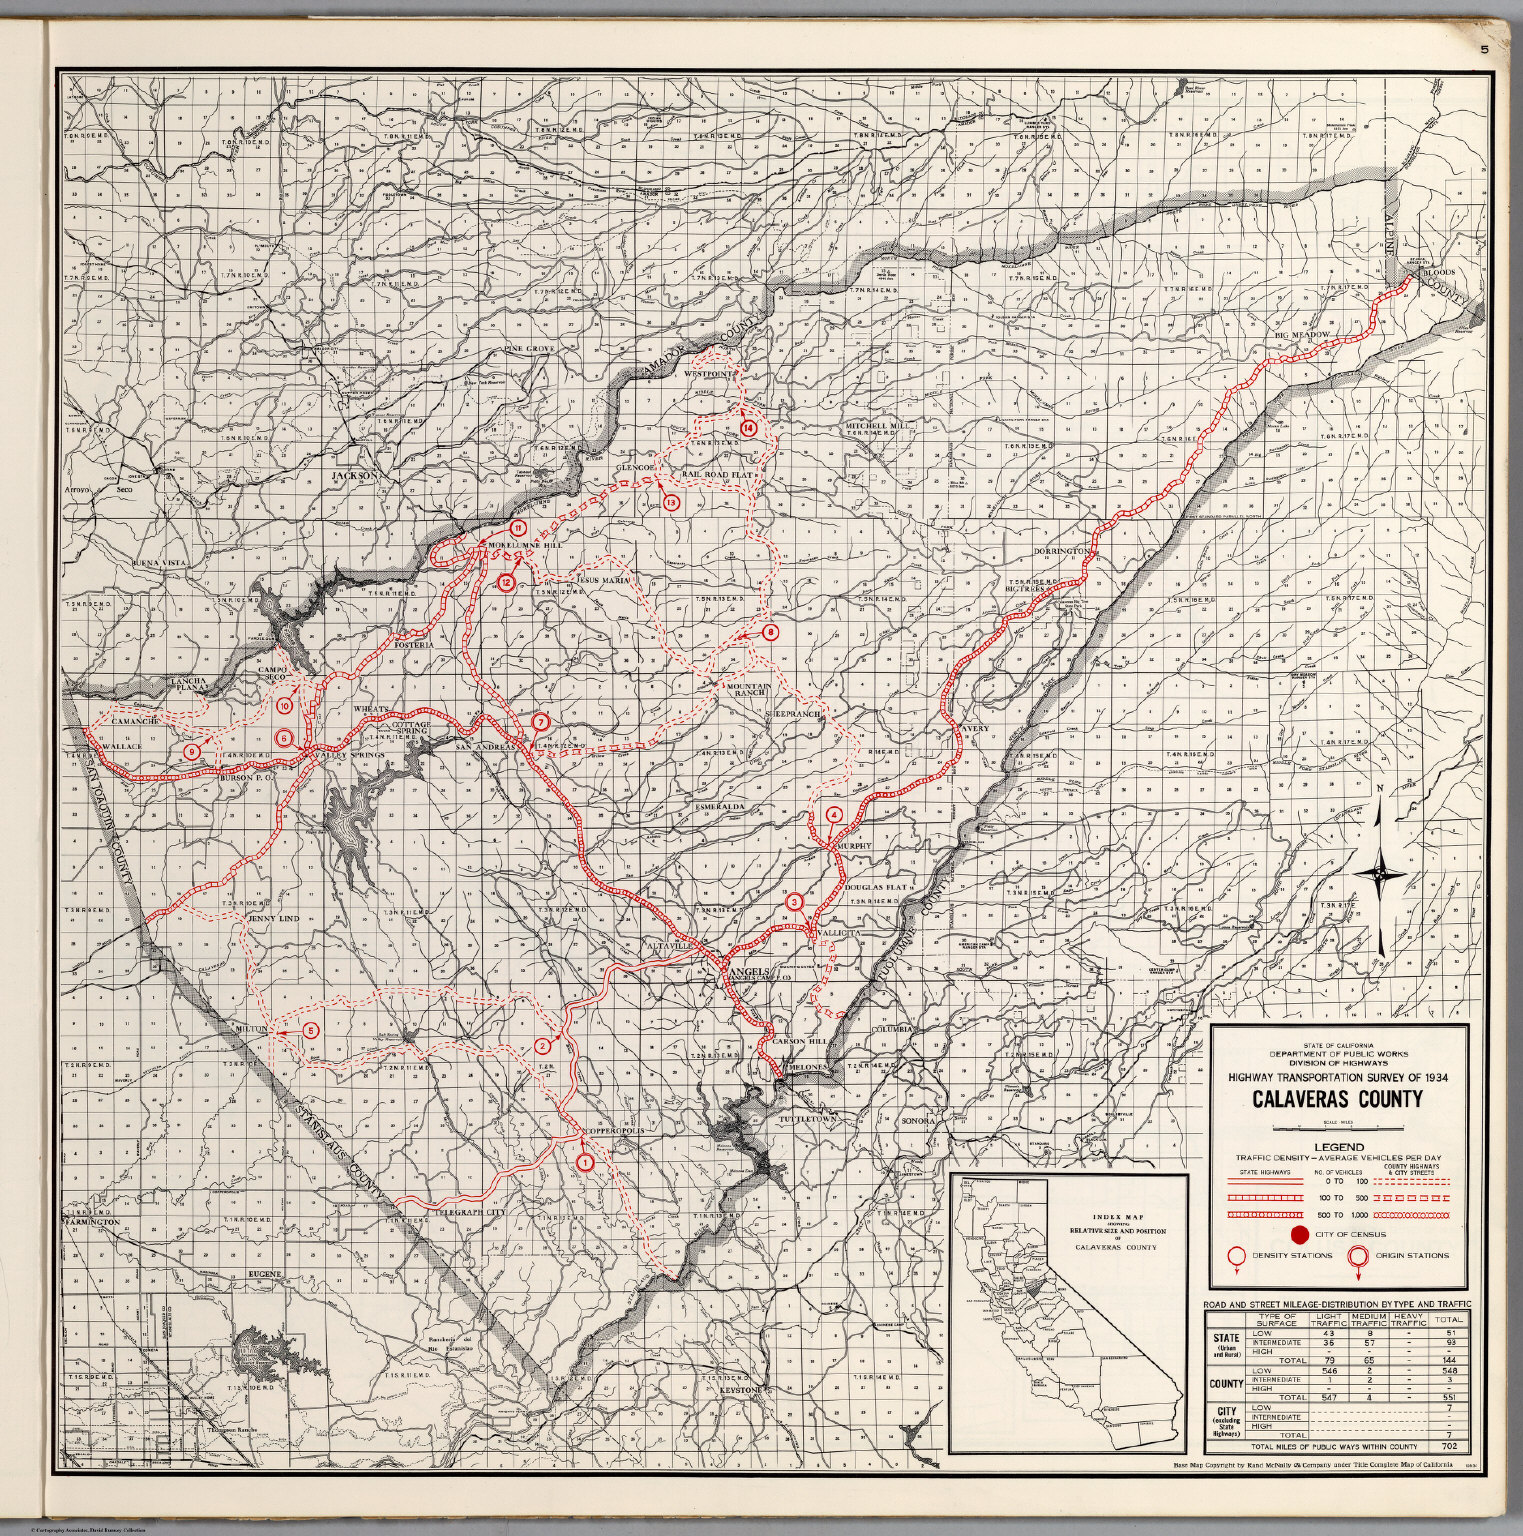 Calaveras County. - David Rumsey Historical Map Collection on jackson county map, placer county map, alpine county map, jefferson county map, sierra county map, kings county map, amador county map, mariposa county map, visalia county map, livermore county map, california map, redding county map, benton county map, contra costa county map, fresno county map, tulare county map, santa rosa county map, san andreas county map, lincoln county map, plumas county map,